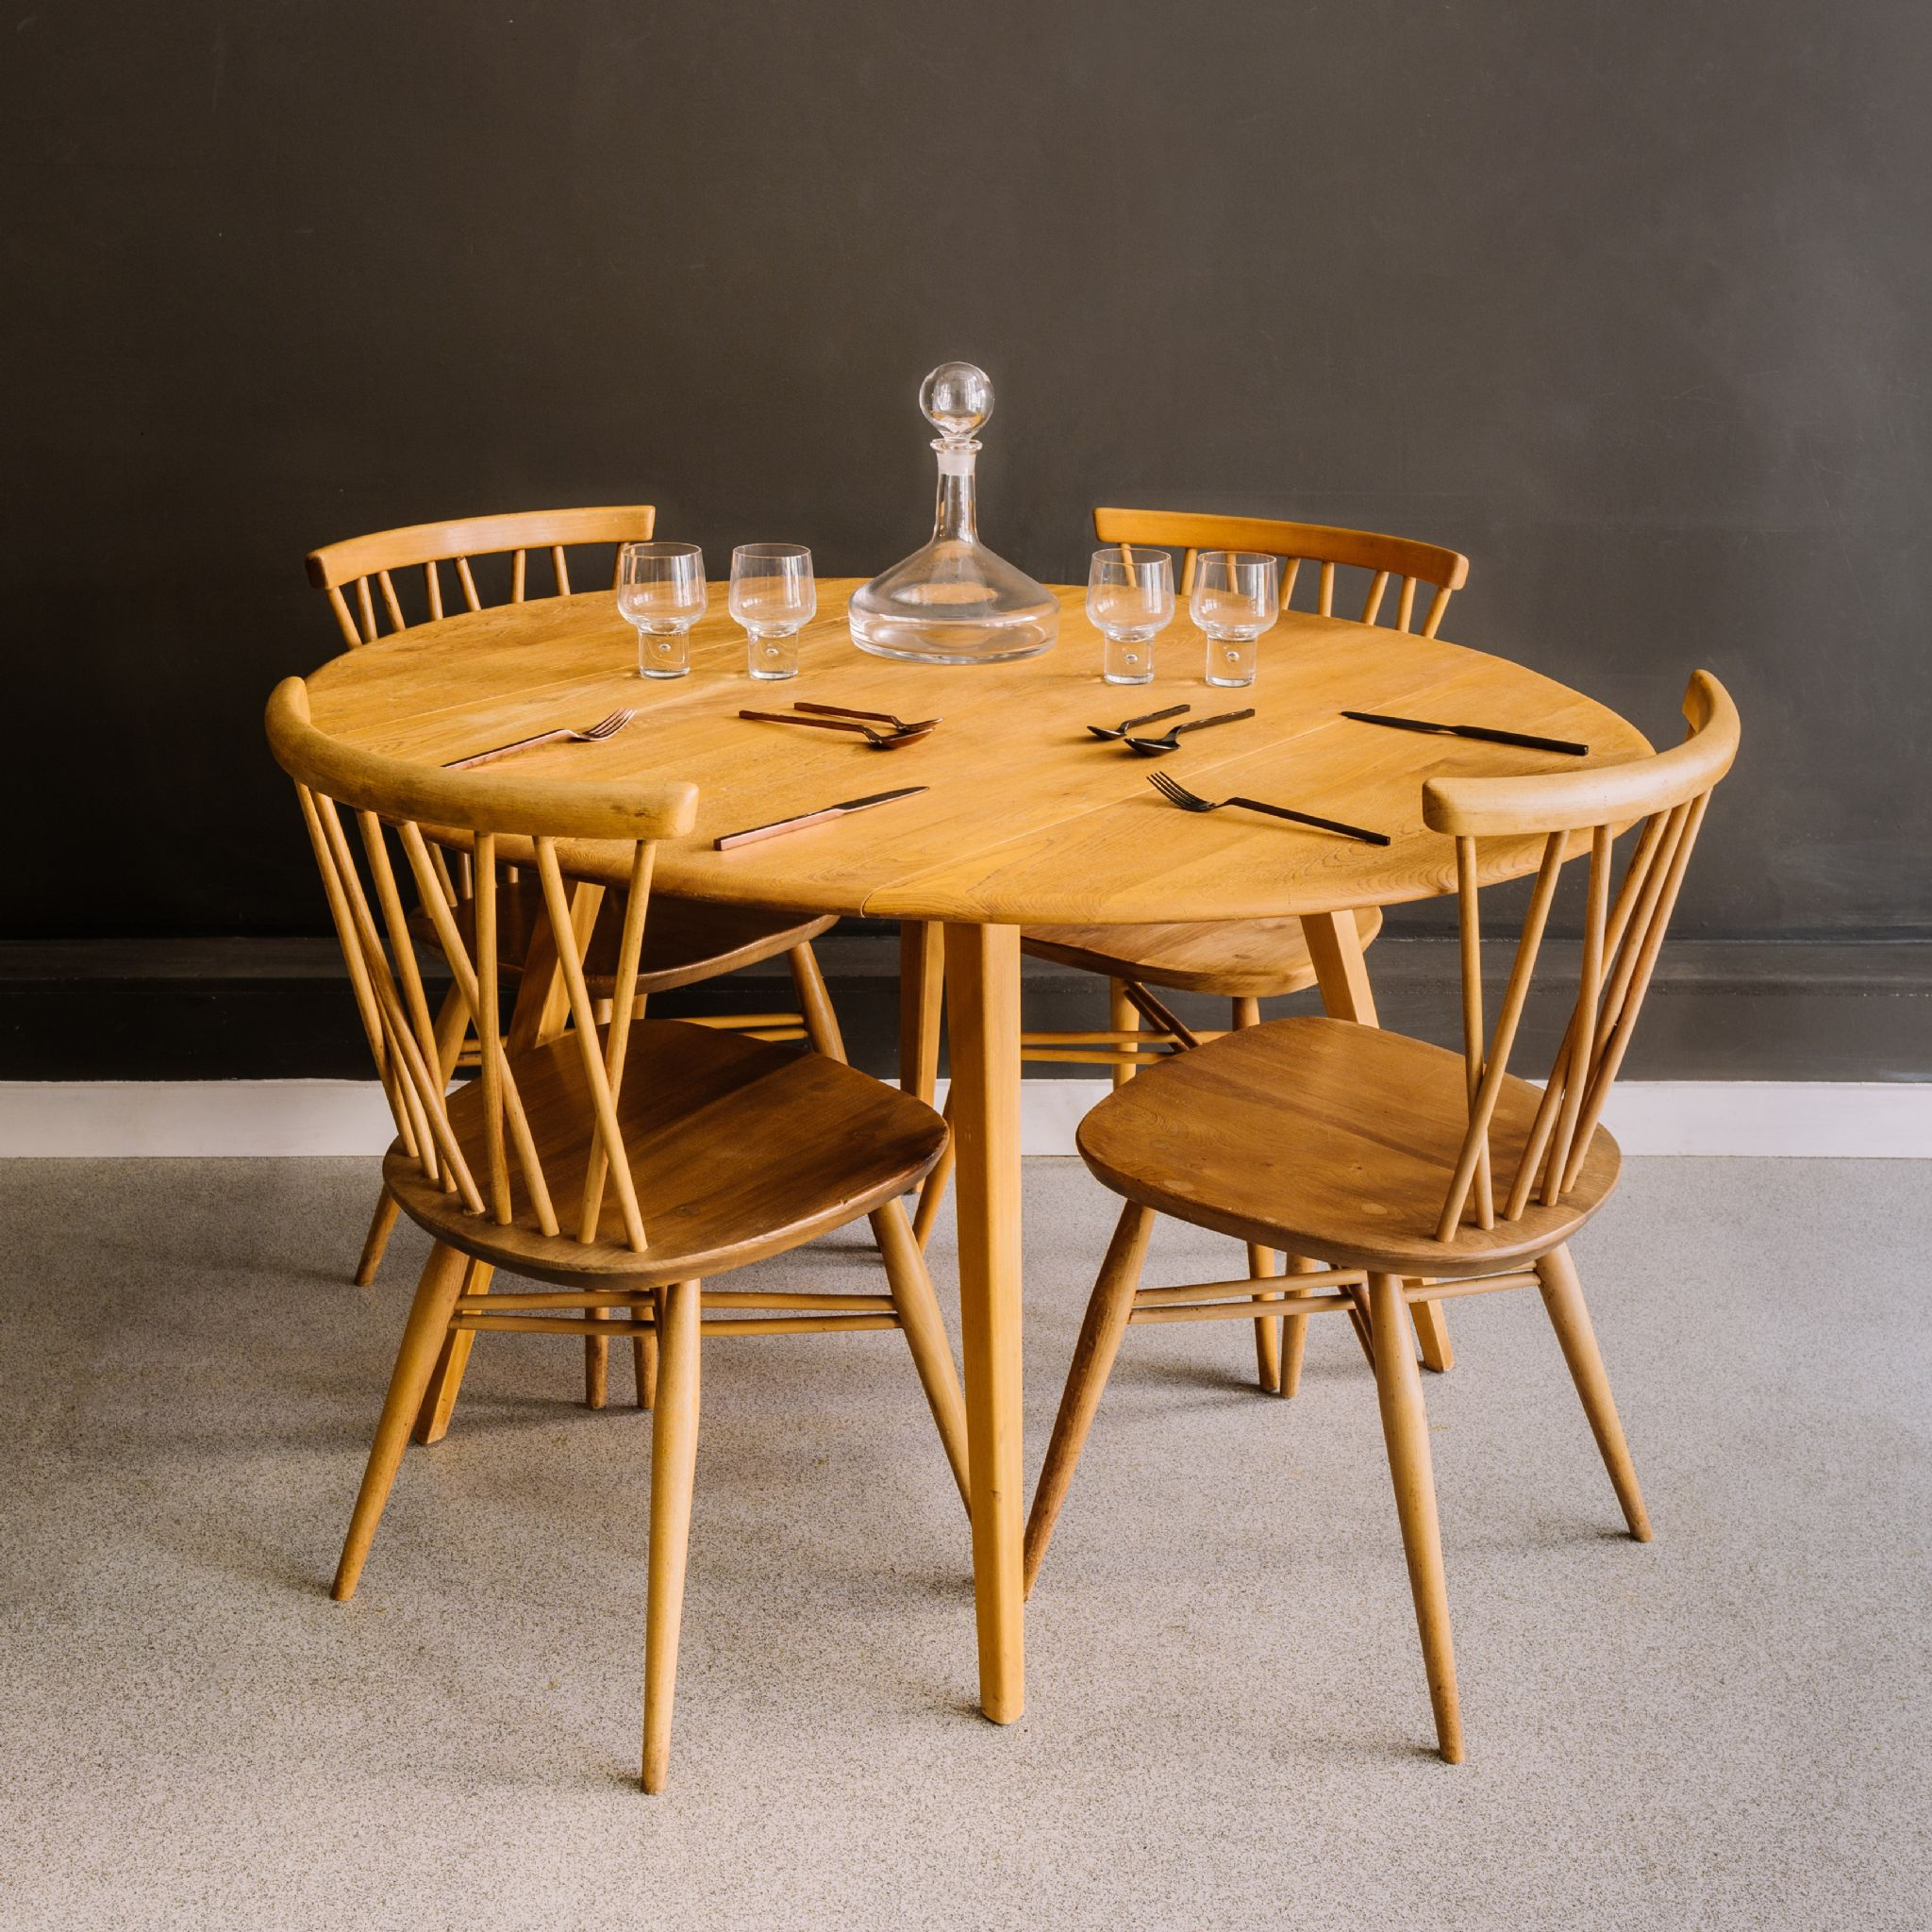 Kitchen table sets under 200 dining room tables glass for Sofa table under 200